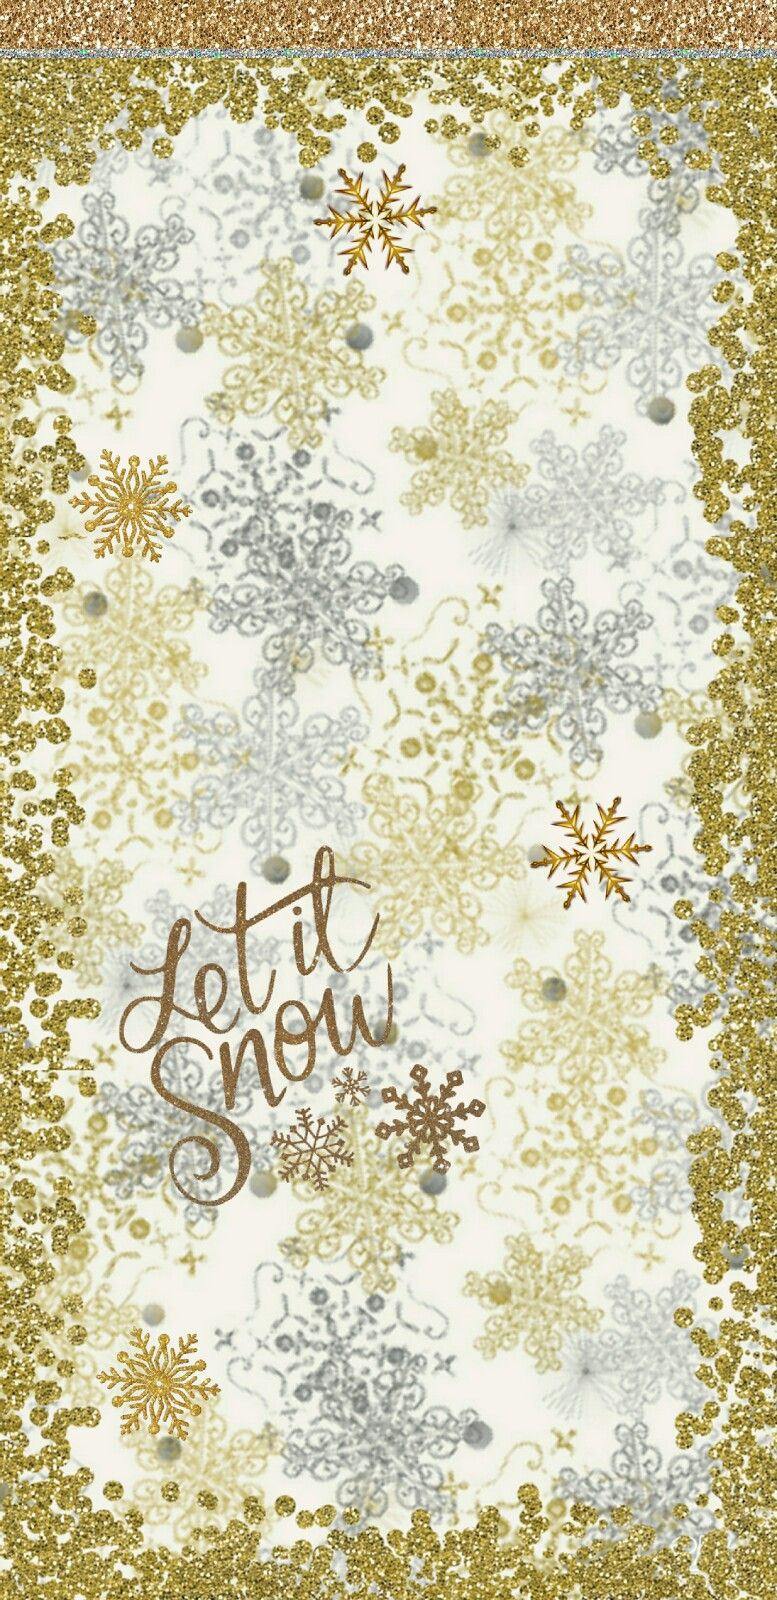 ♡NOTE8LOVE | Christmas /New Year wallpapers | Pinterest | Wallpaper ...